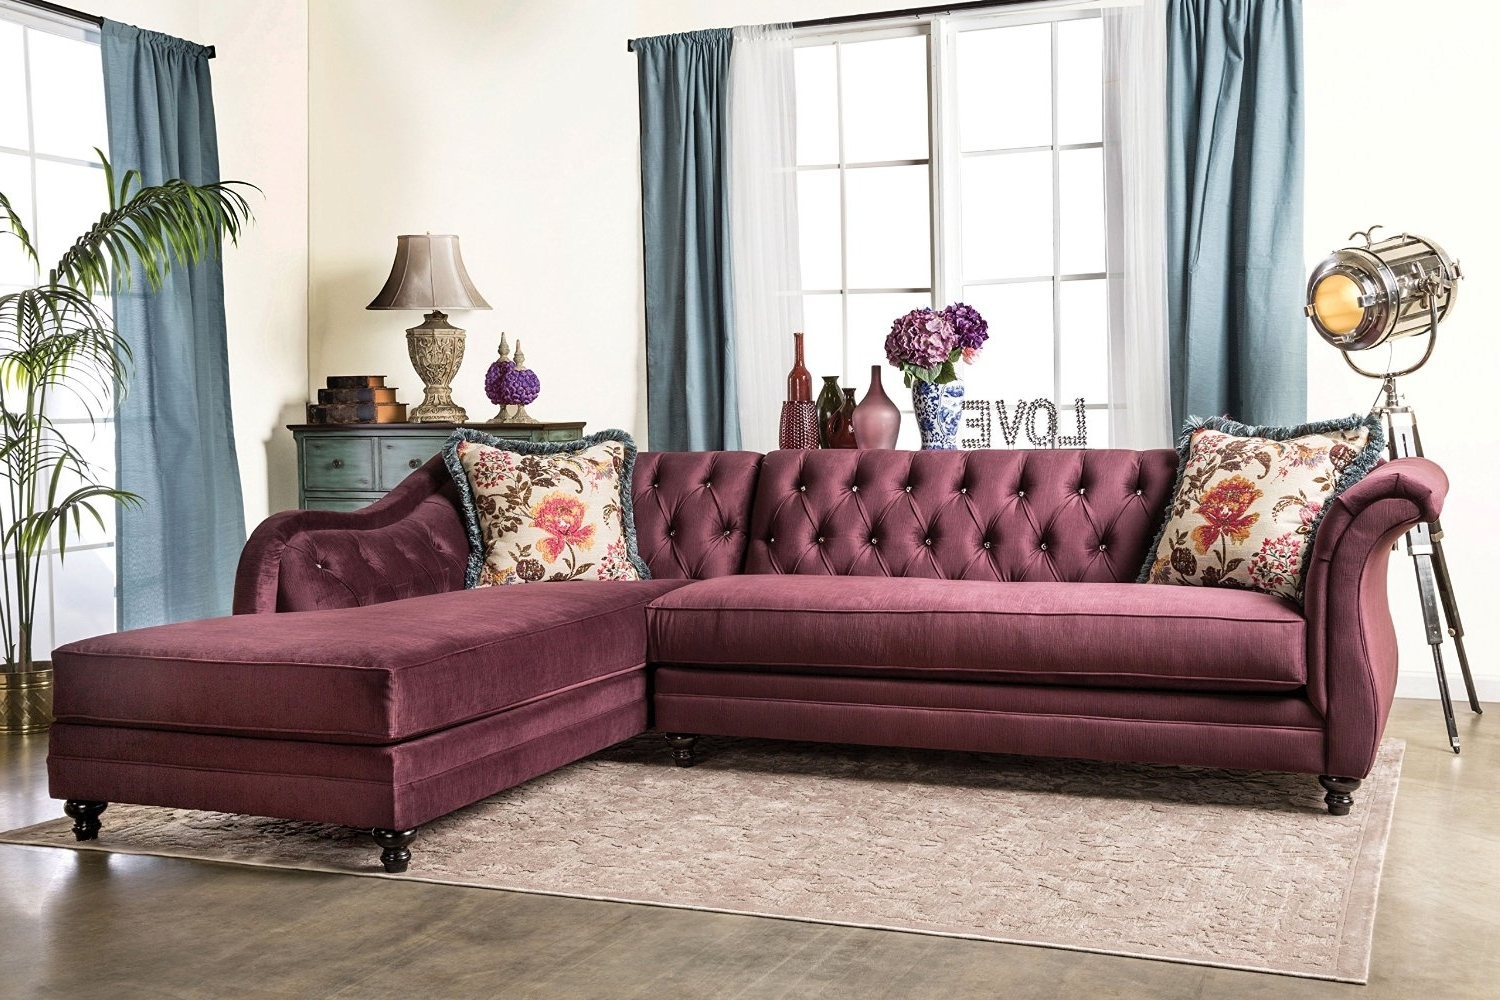 25 Best Chesterfield Sofas To Buy In 2018 Throughout Widely Used Tufted Leather Chesterfield Sofas (View 1 of 20)